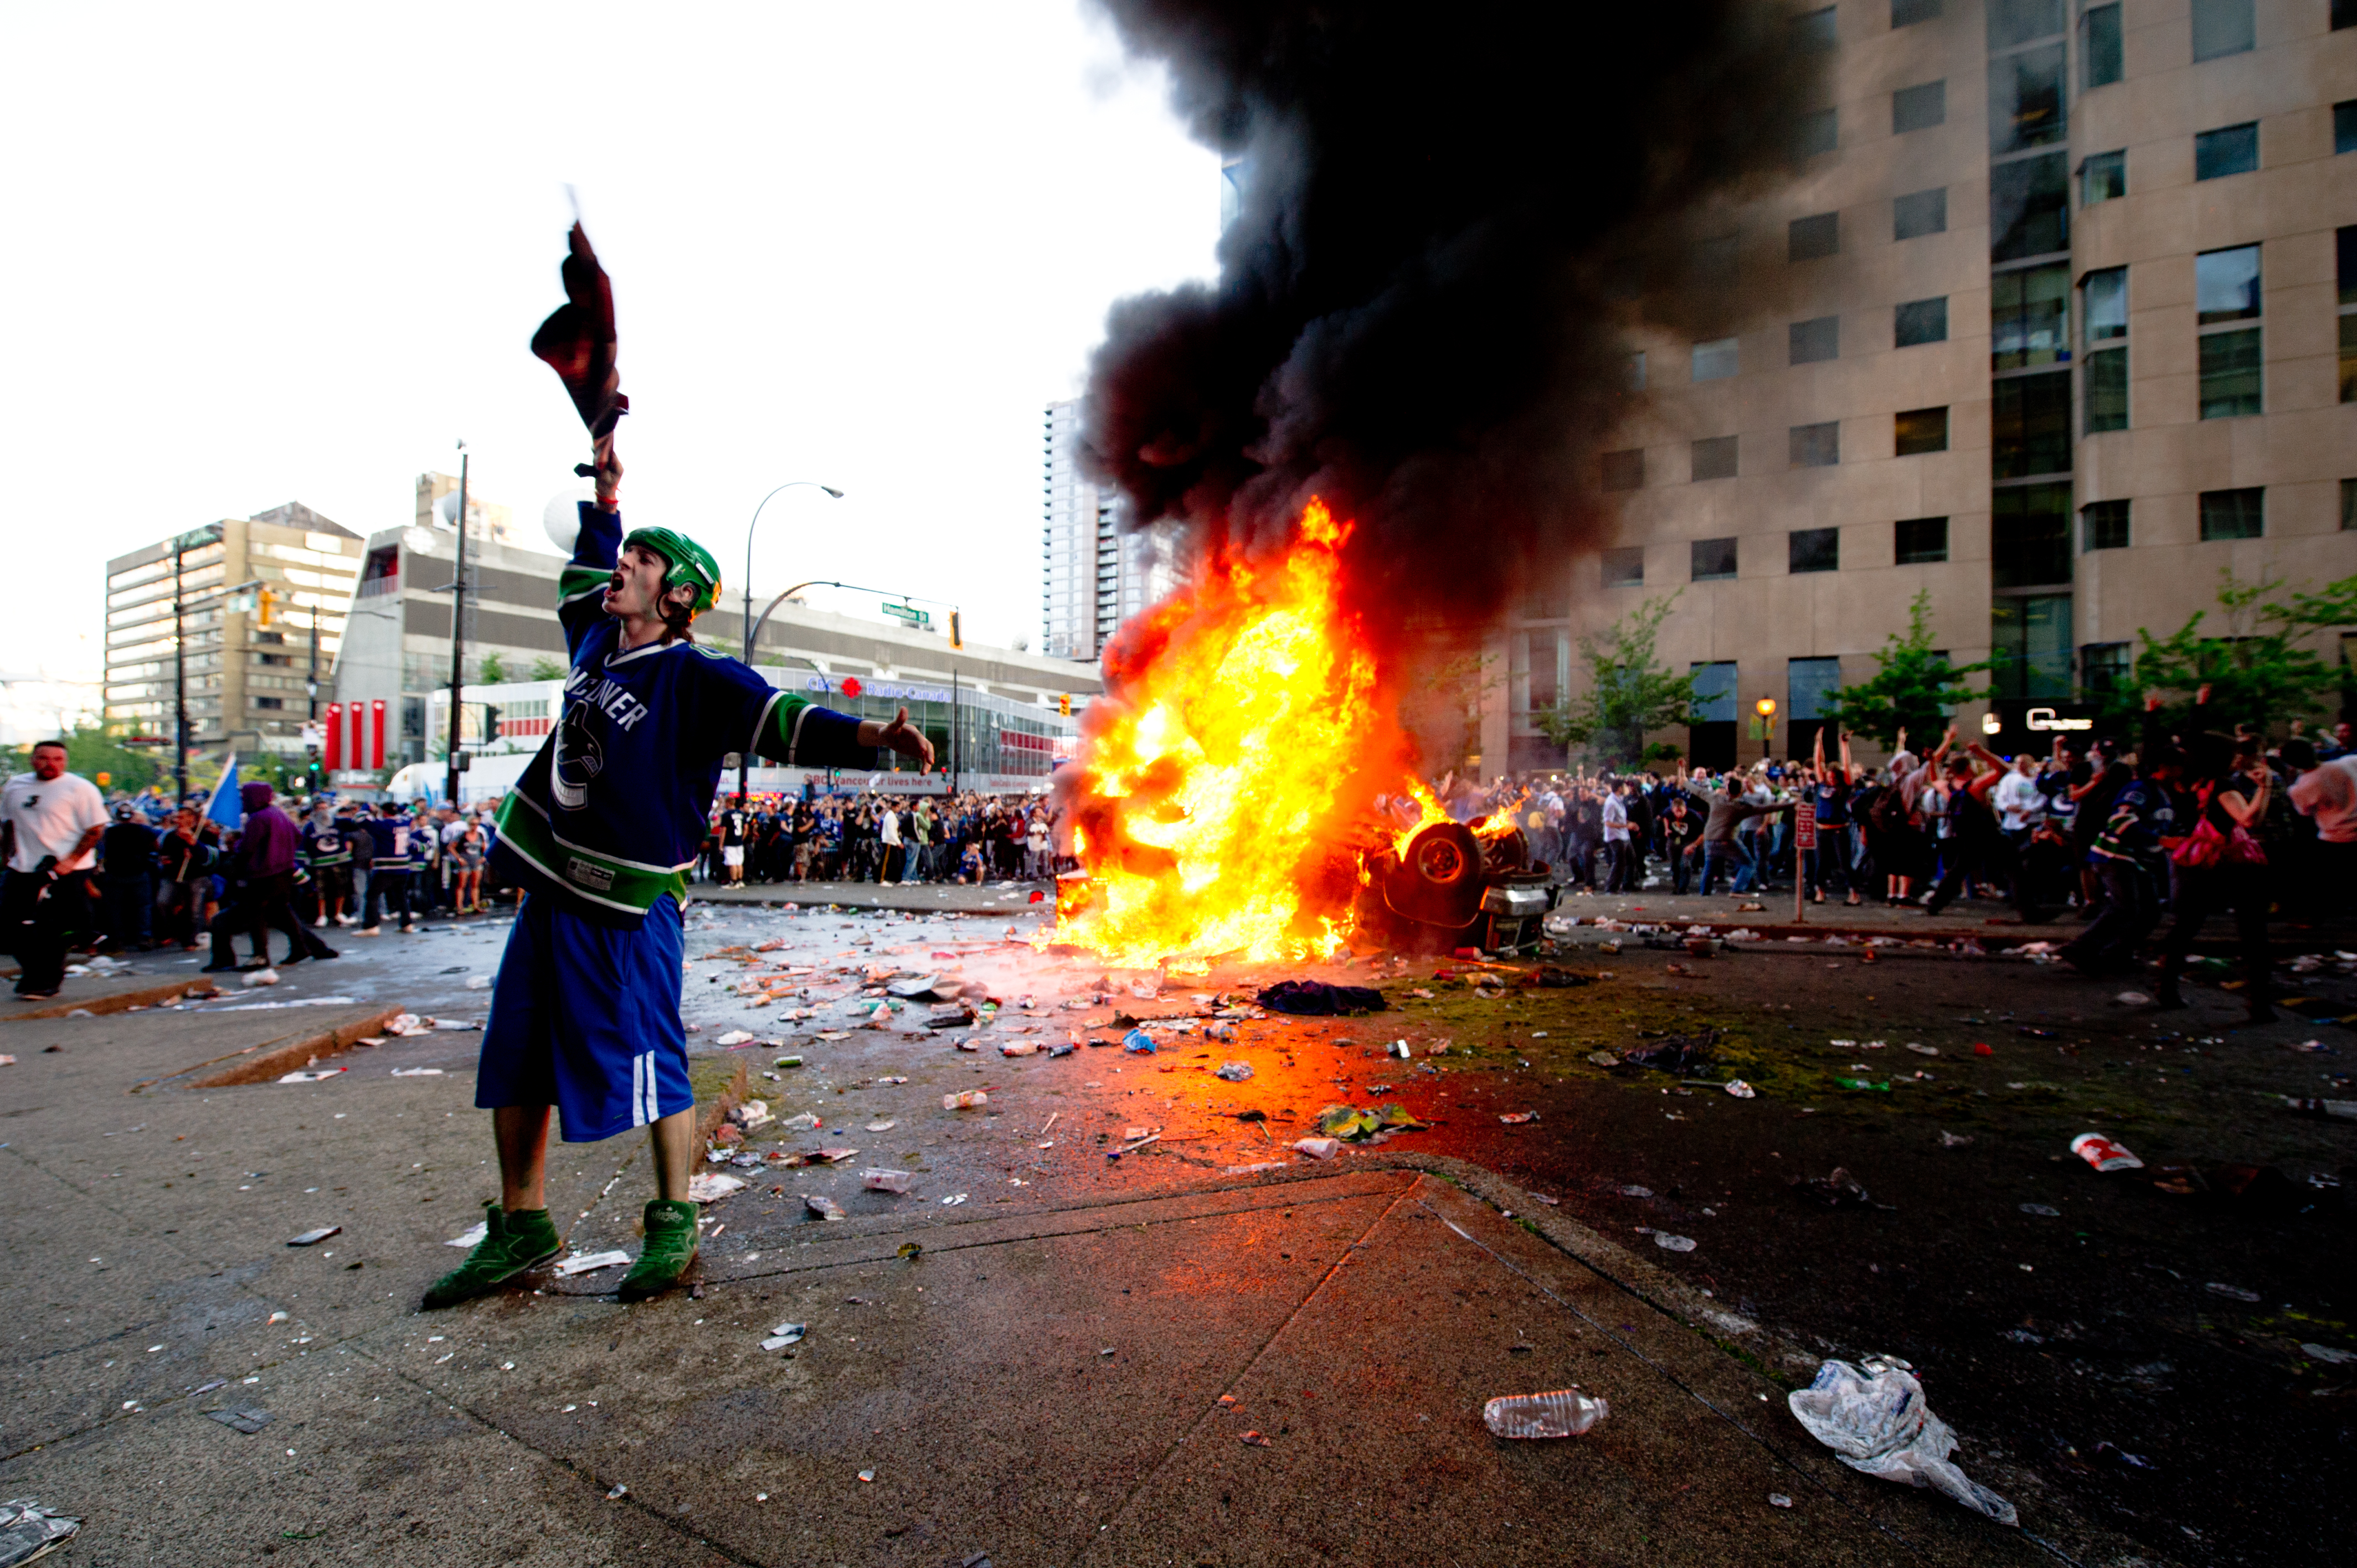 What sentences do the rioters get?